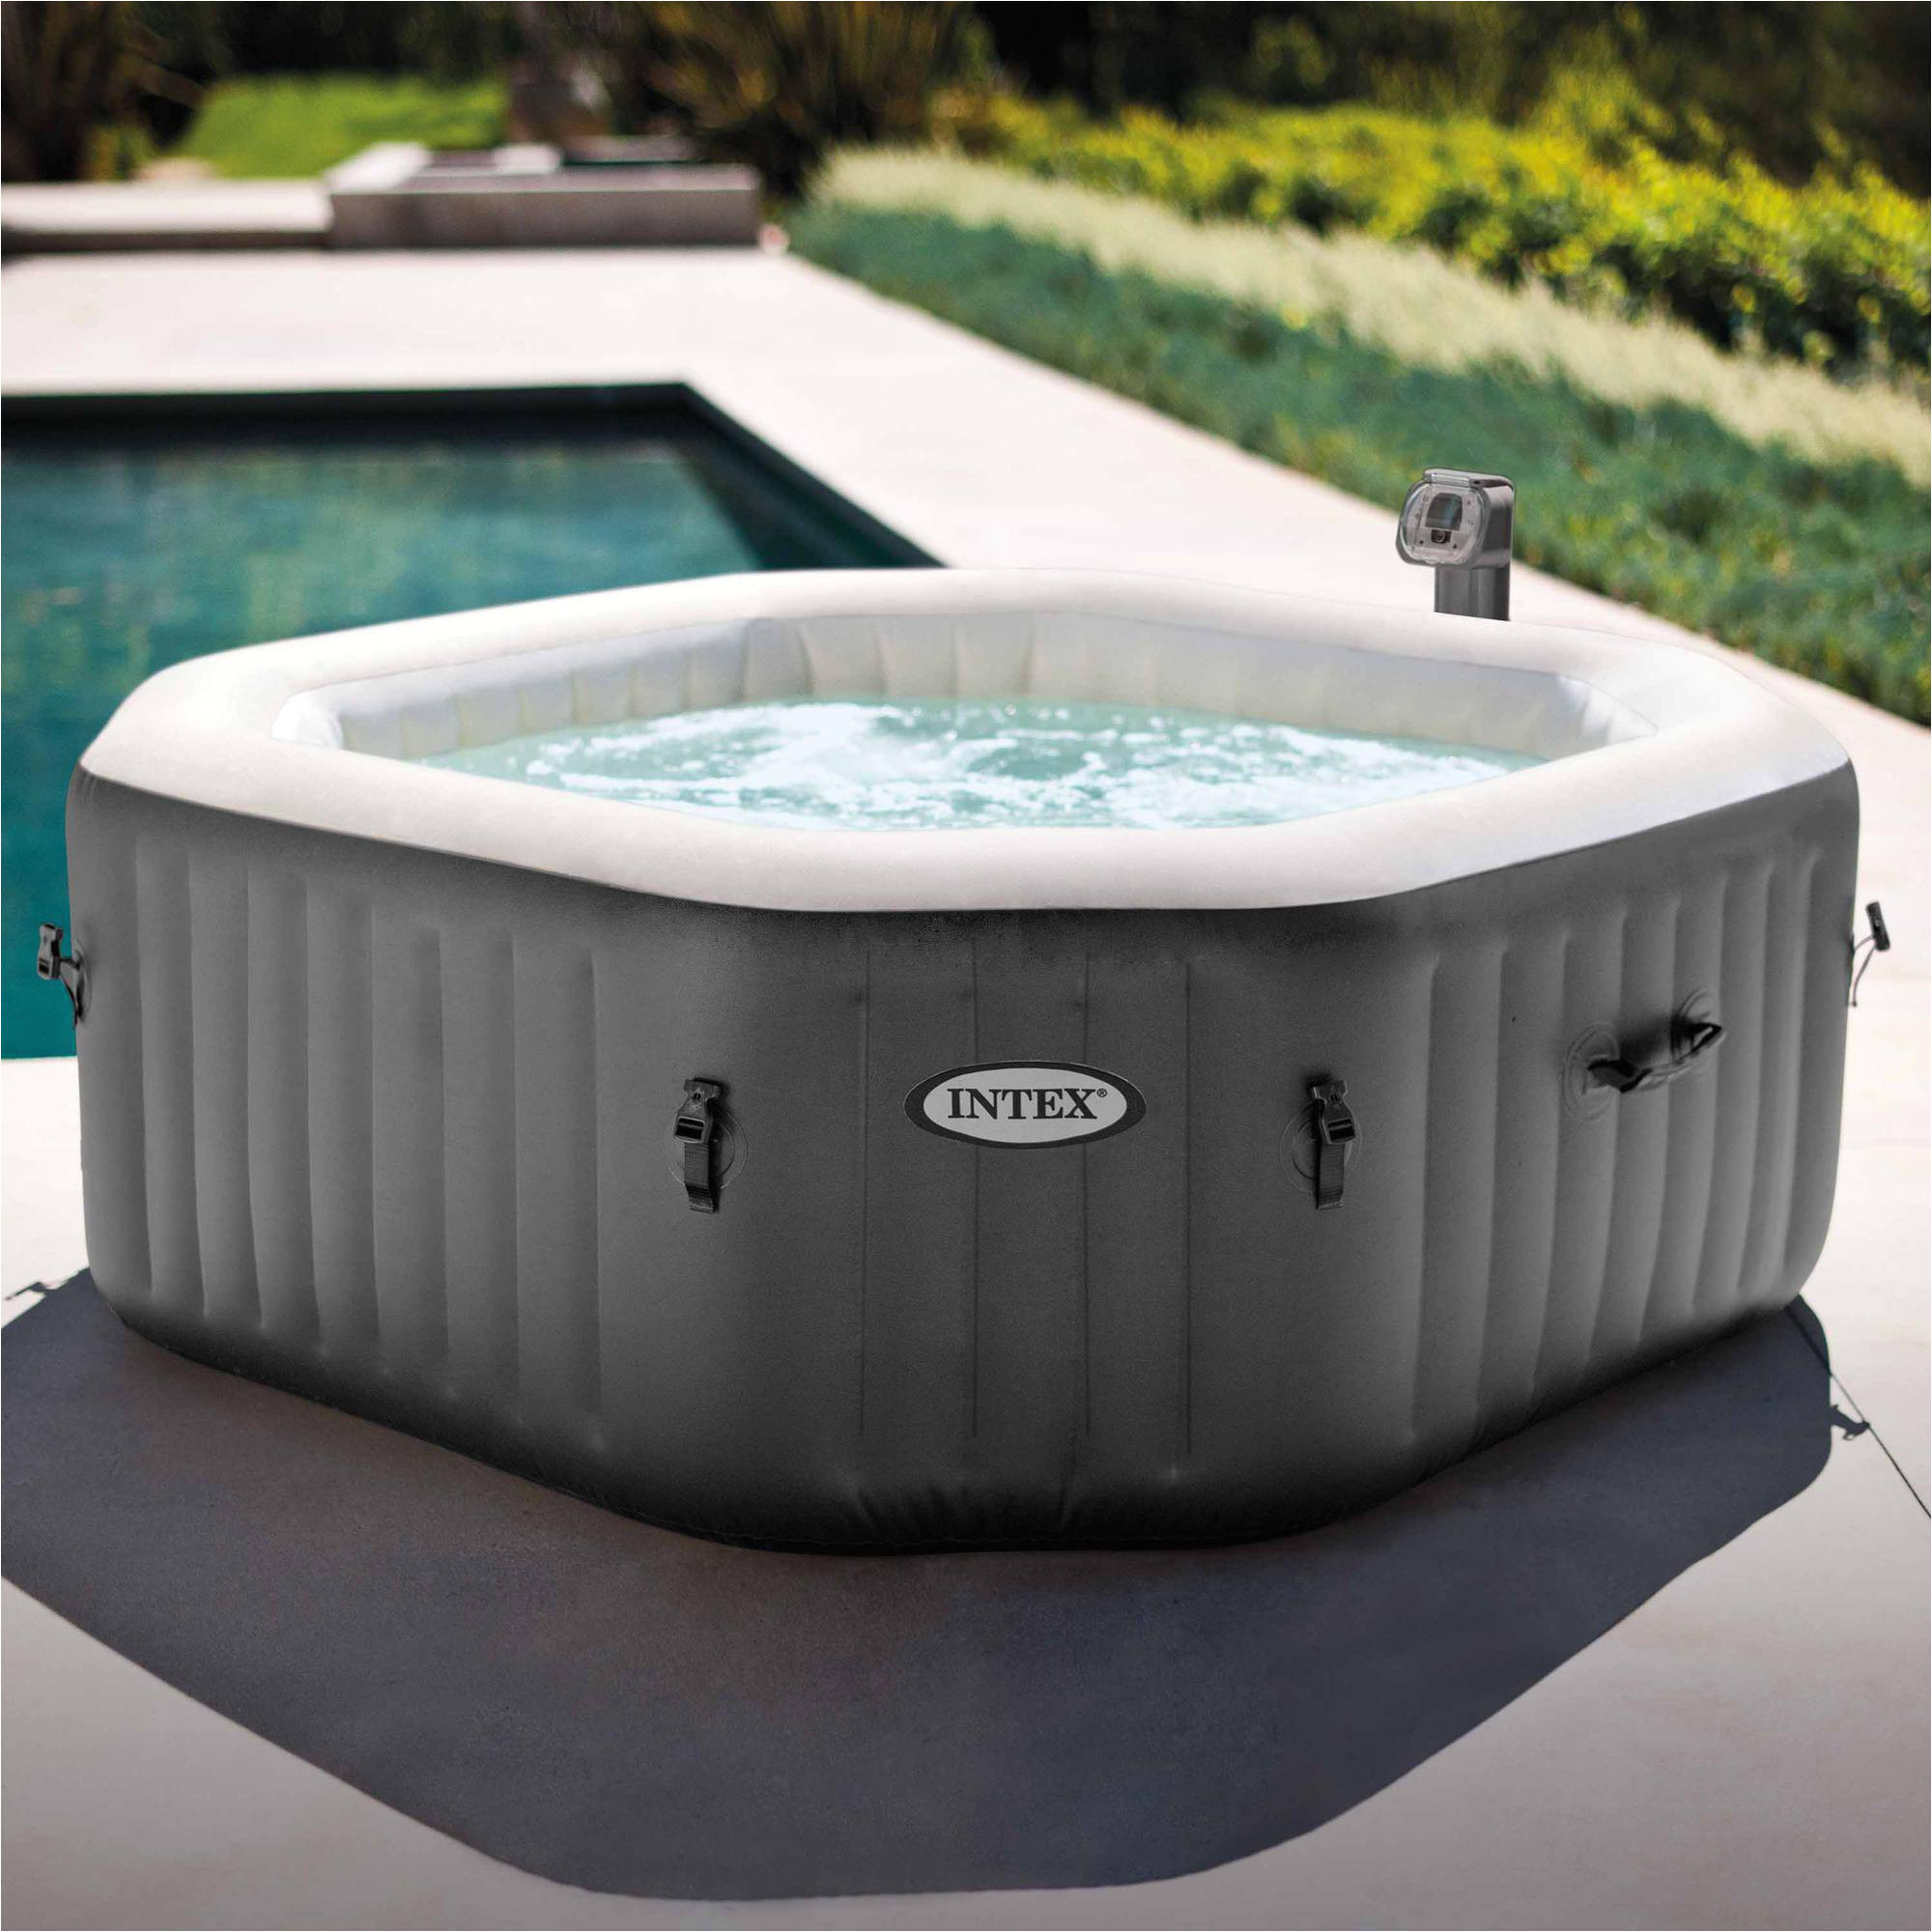 Hot Tub Designs and Layouts Intex 120 Bubble Jets 4 Person Octagonal Portable Inflatable Hot Tub